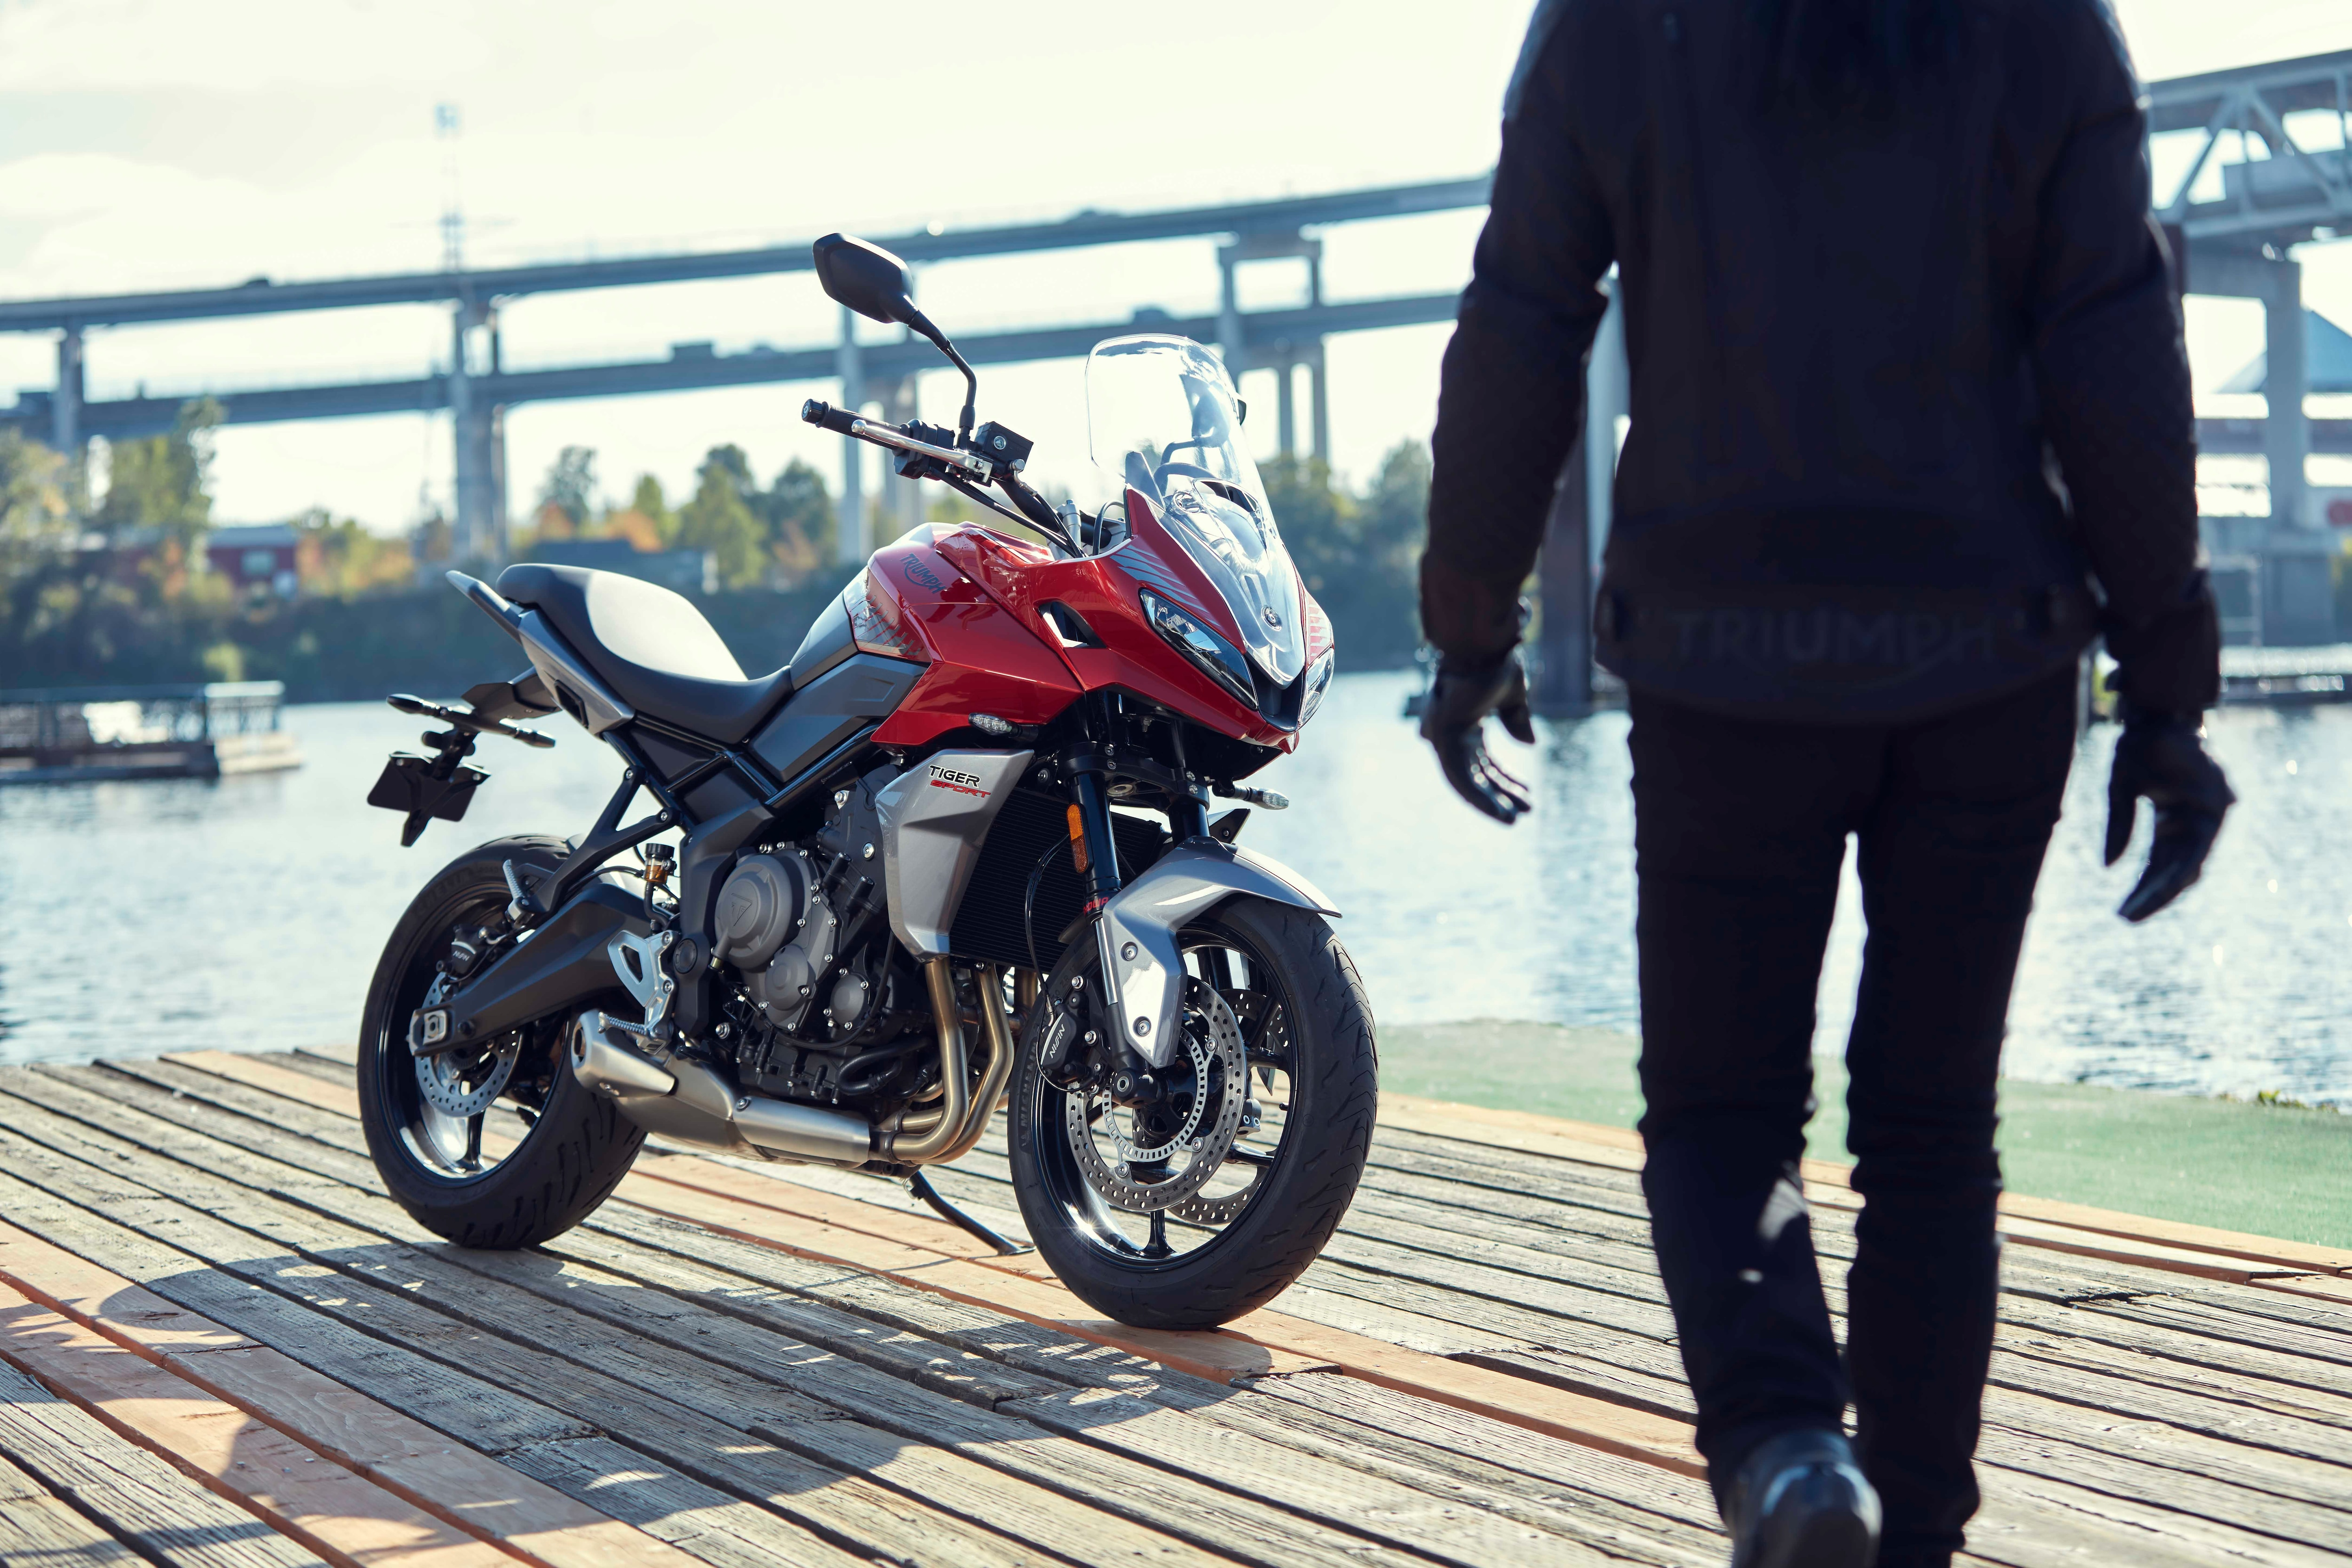 The Tiger Sport 660 has been offered with a class-leading 10,000 miles (16,000 km) or 12 months service interval.